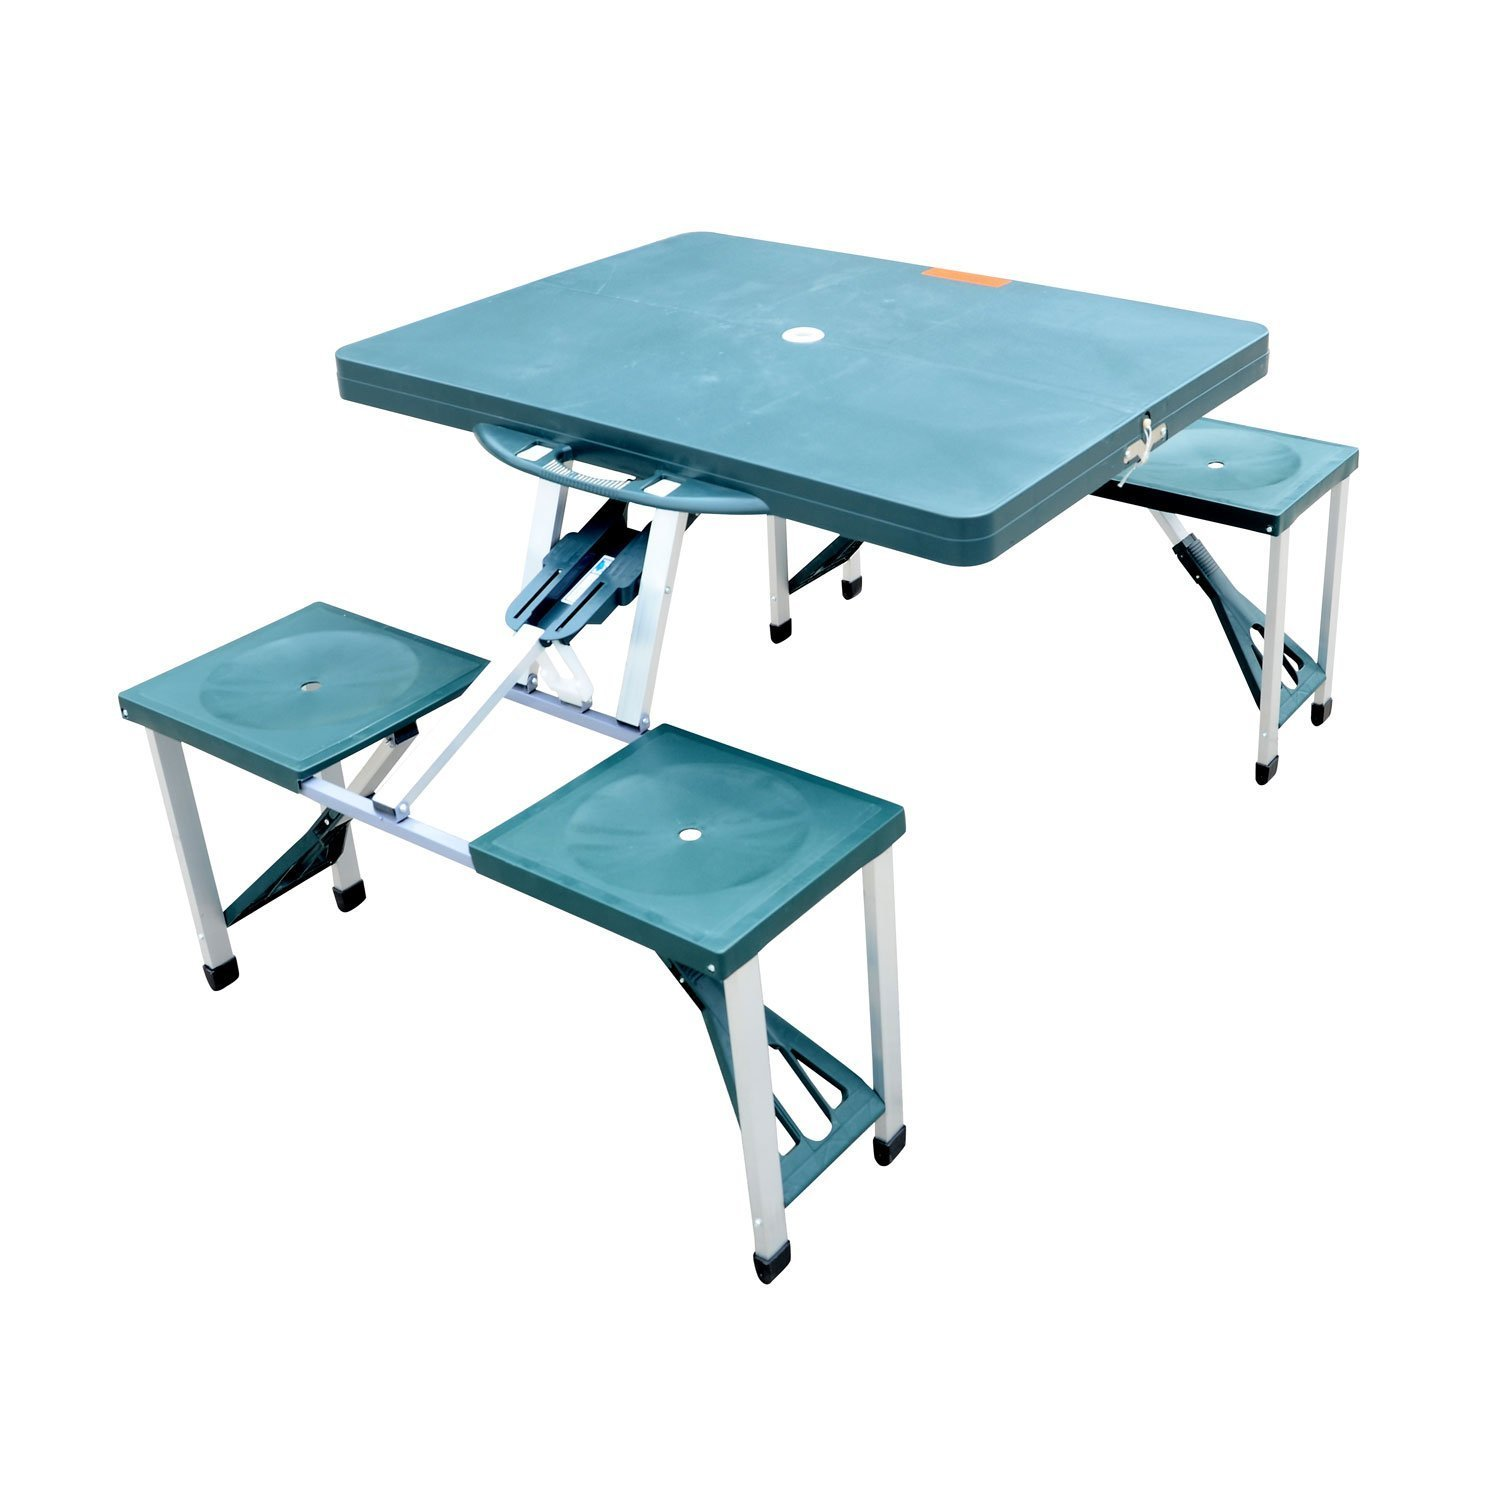 Folding Kids Table : Picnic Table Portable Folding Camping Outdoor Garden Yard Suitcase w ...